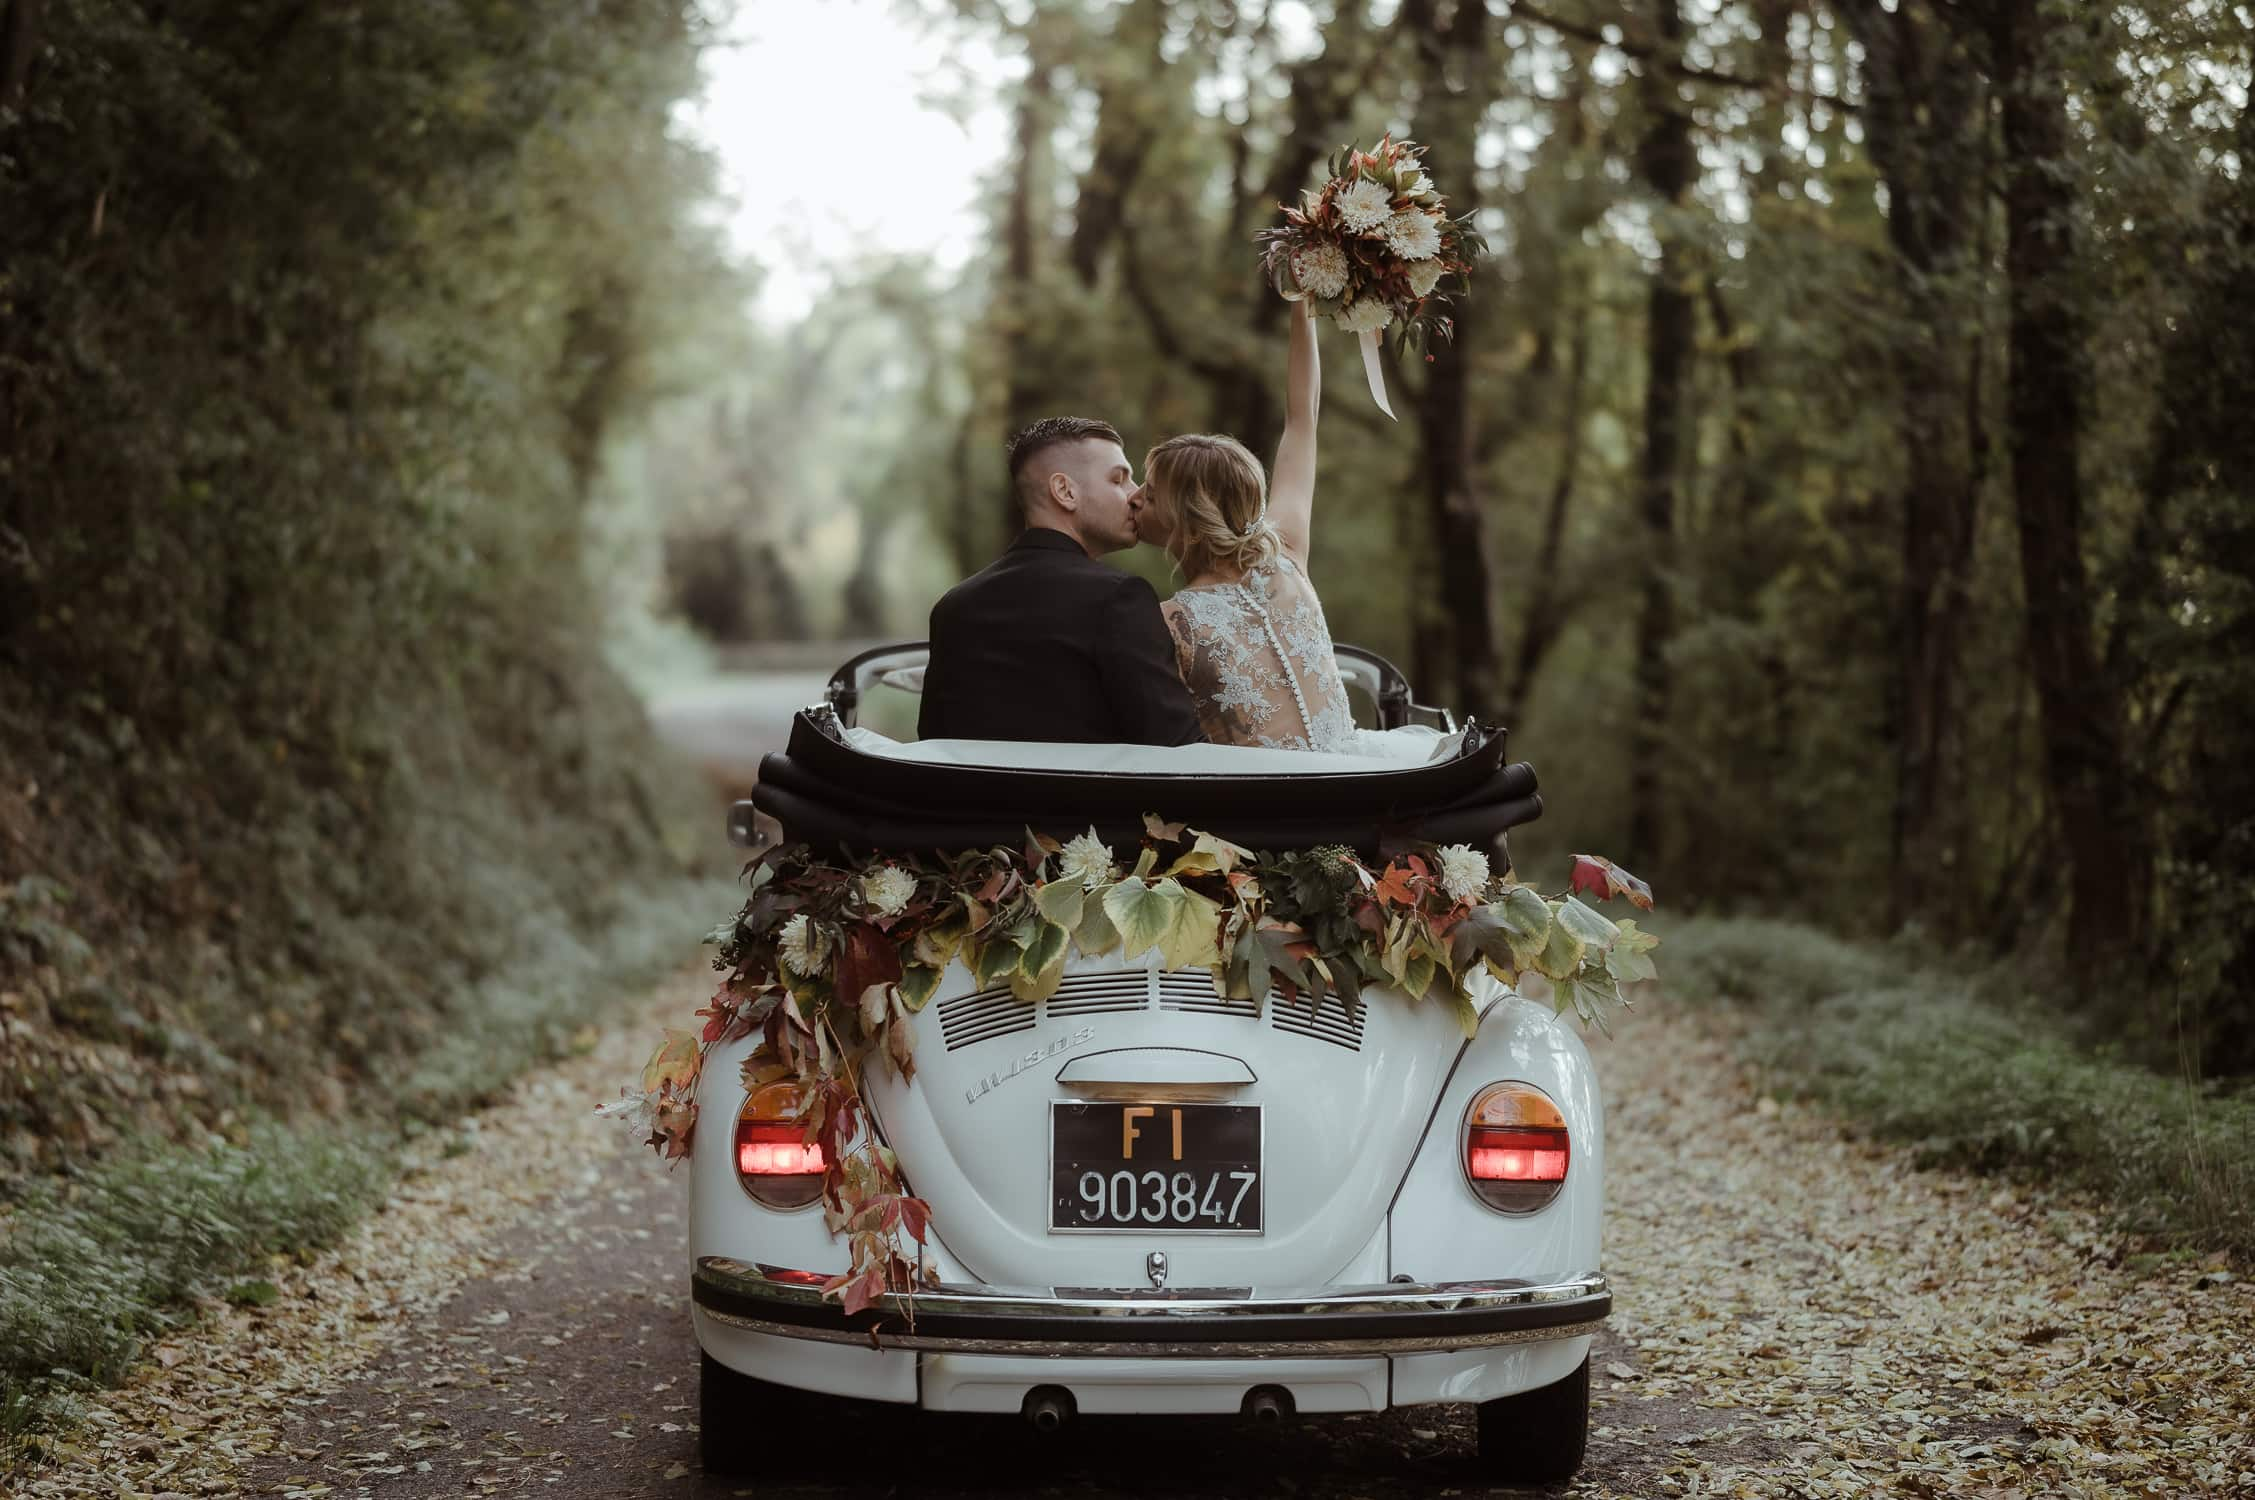 Bride and groom on a vintage VW white car with flowers while kissing in a forest in Italy   Elopement Definition